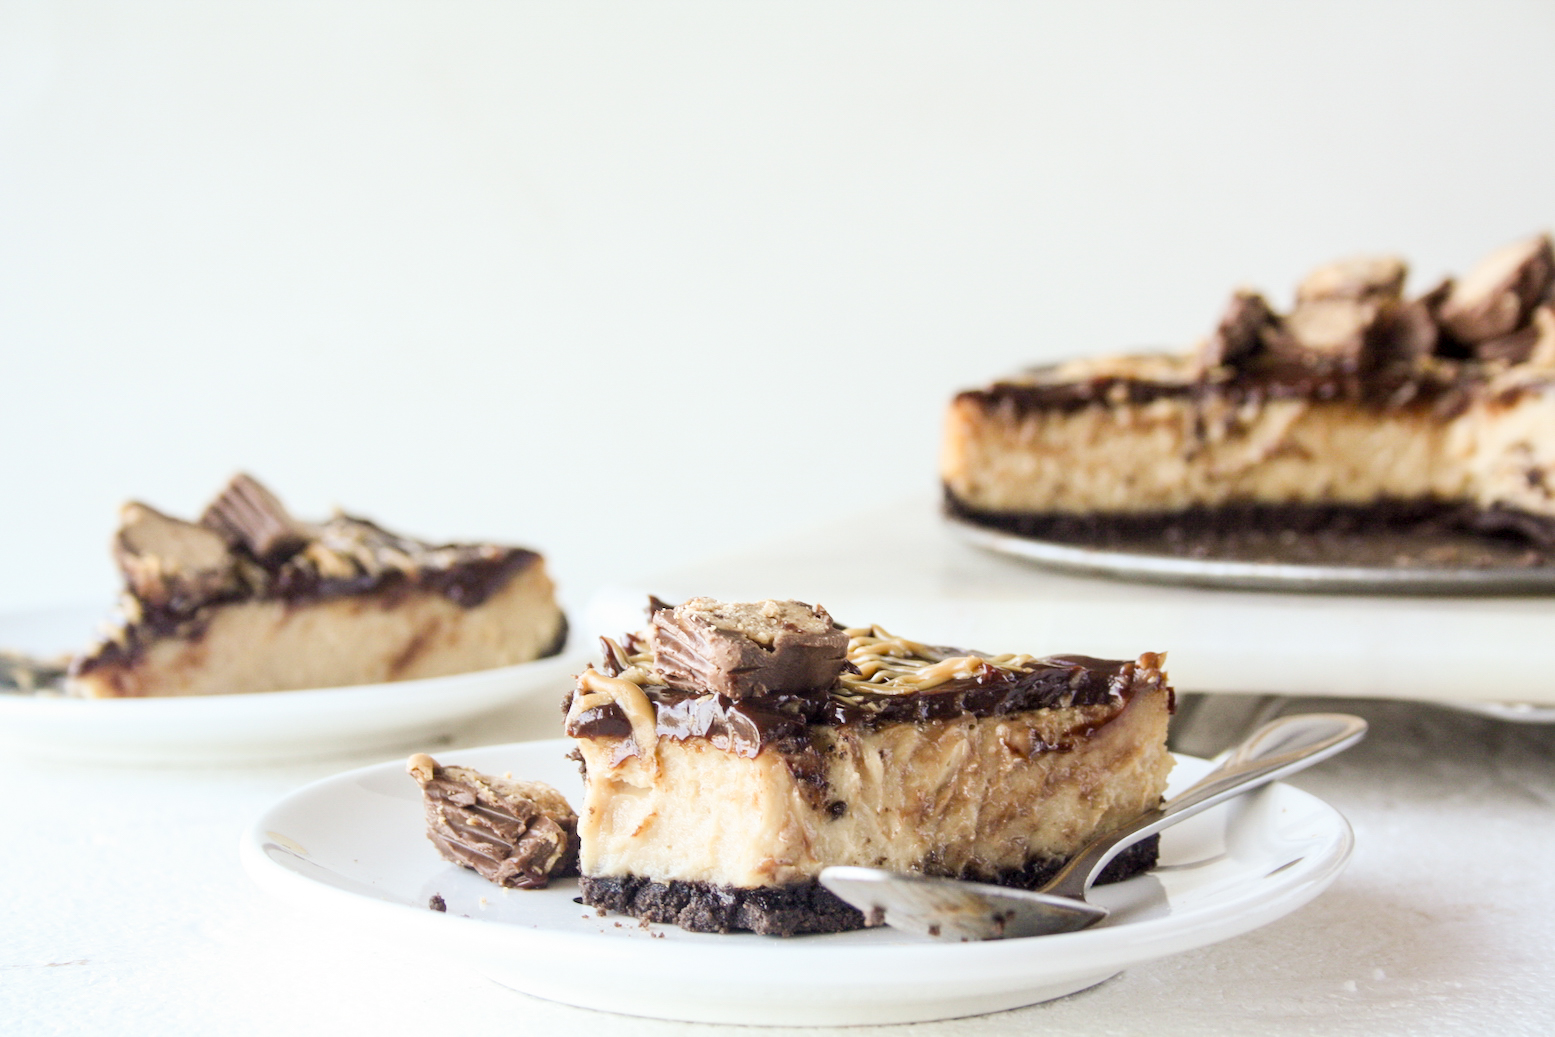 Creamy baked peanut butter cheesecake with Oreo crust and chocolate ganache